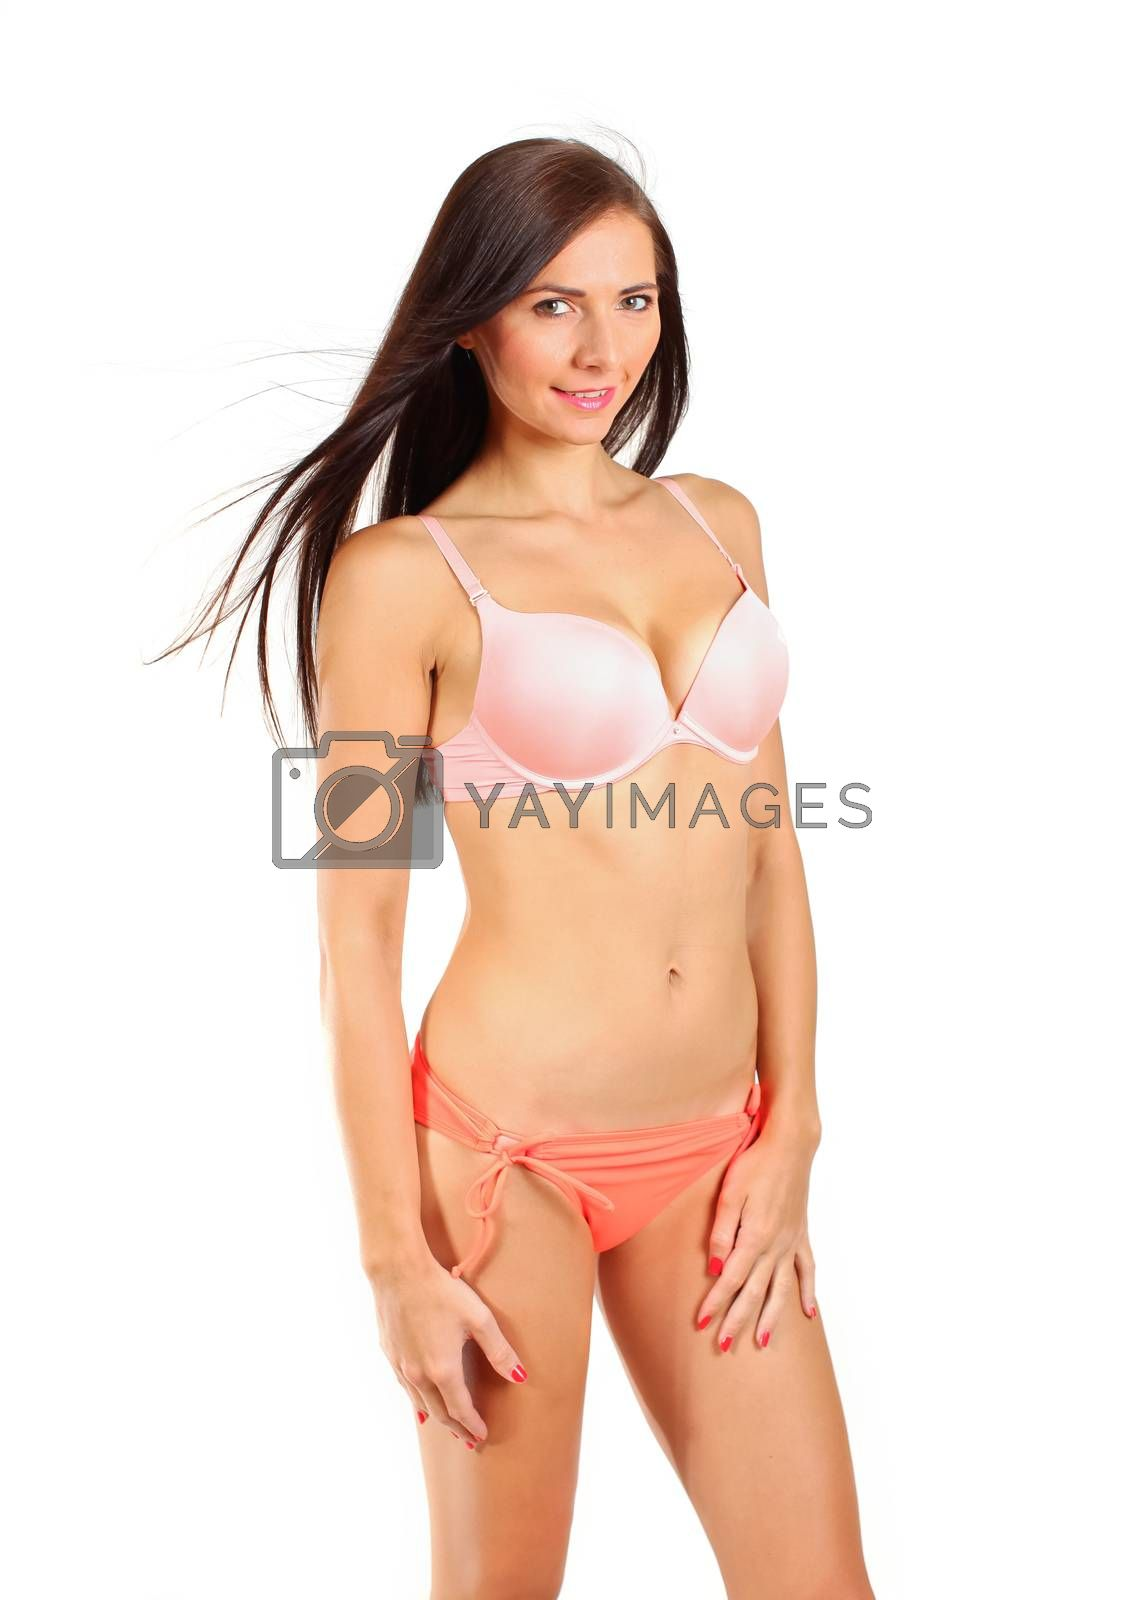 Royalty free image of Young brunette woman in bikini underwear isolated on white backg by Ivanko